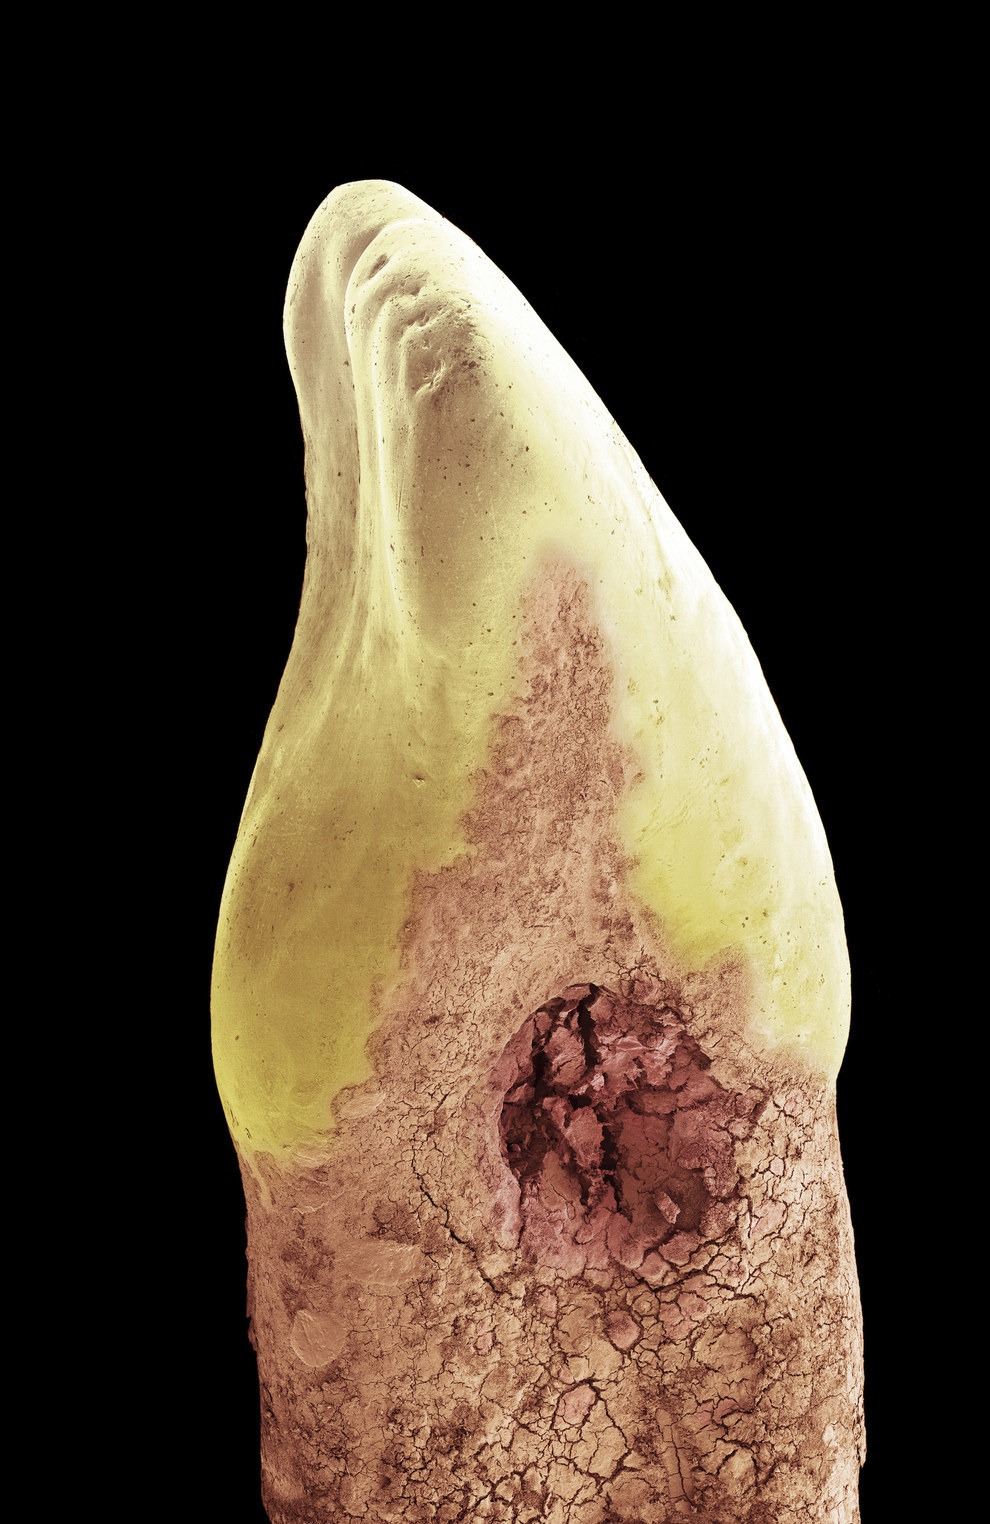 Microscopic photo of cavity